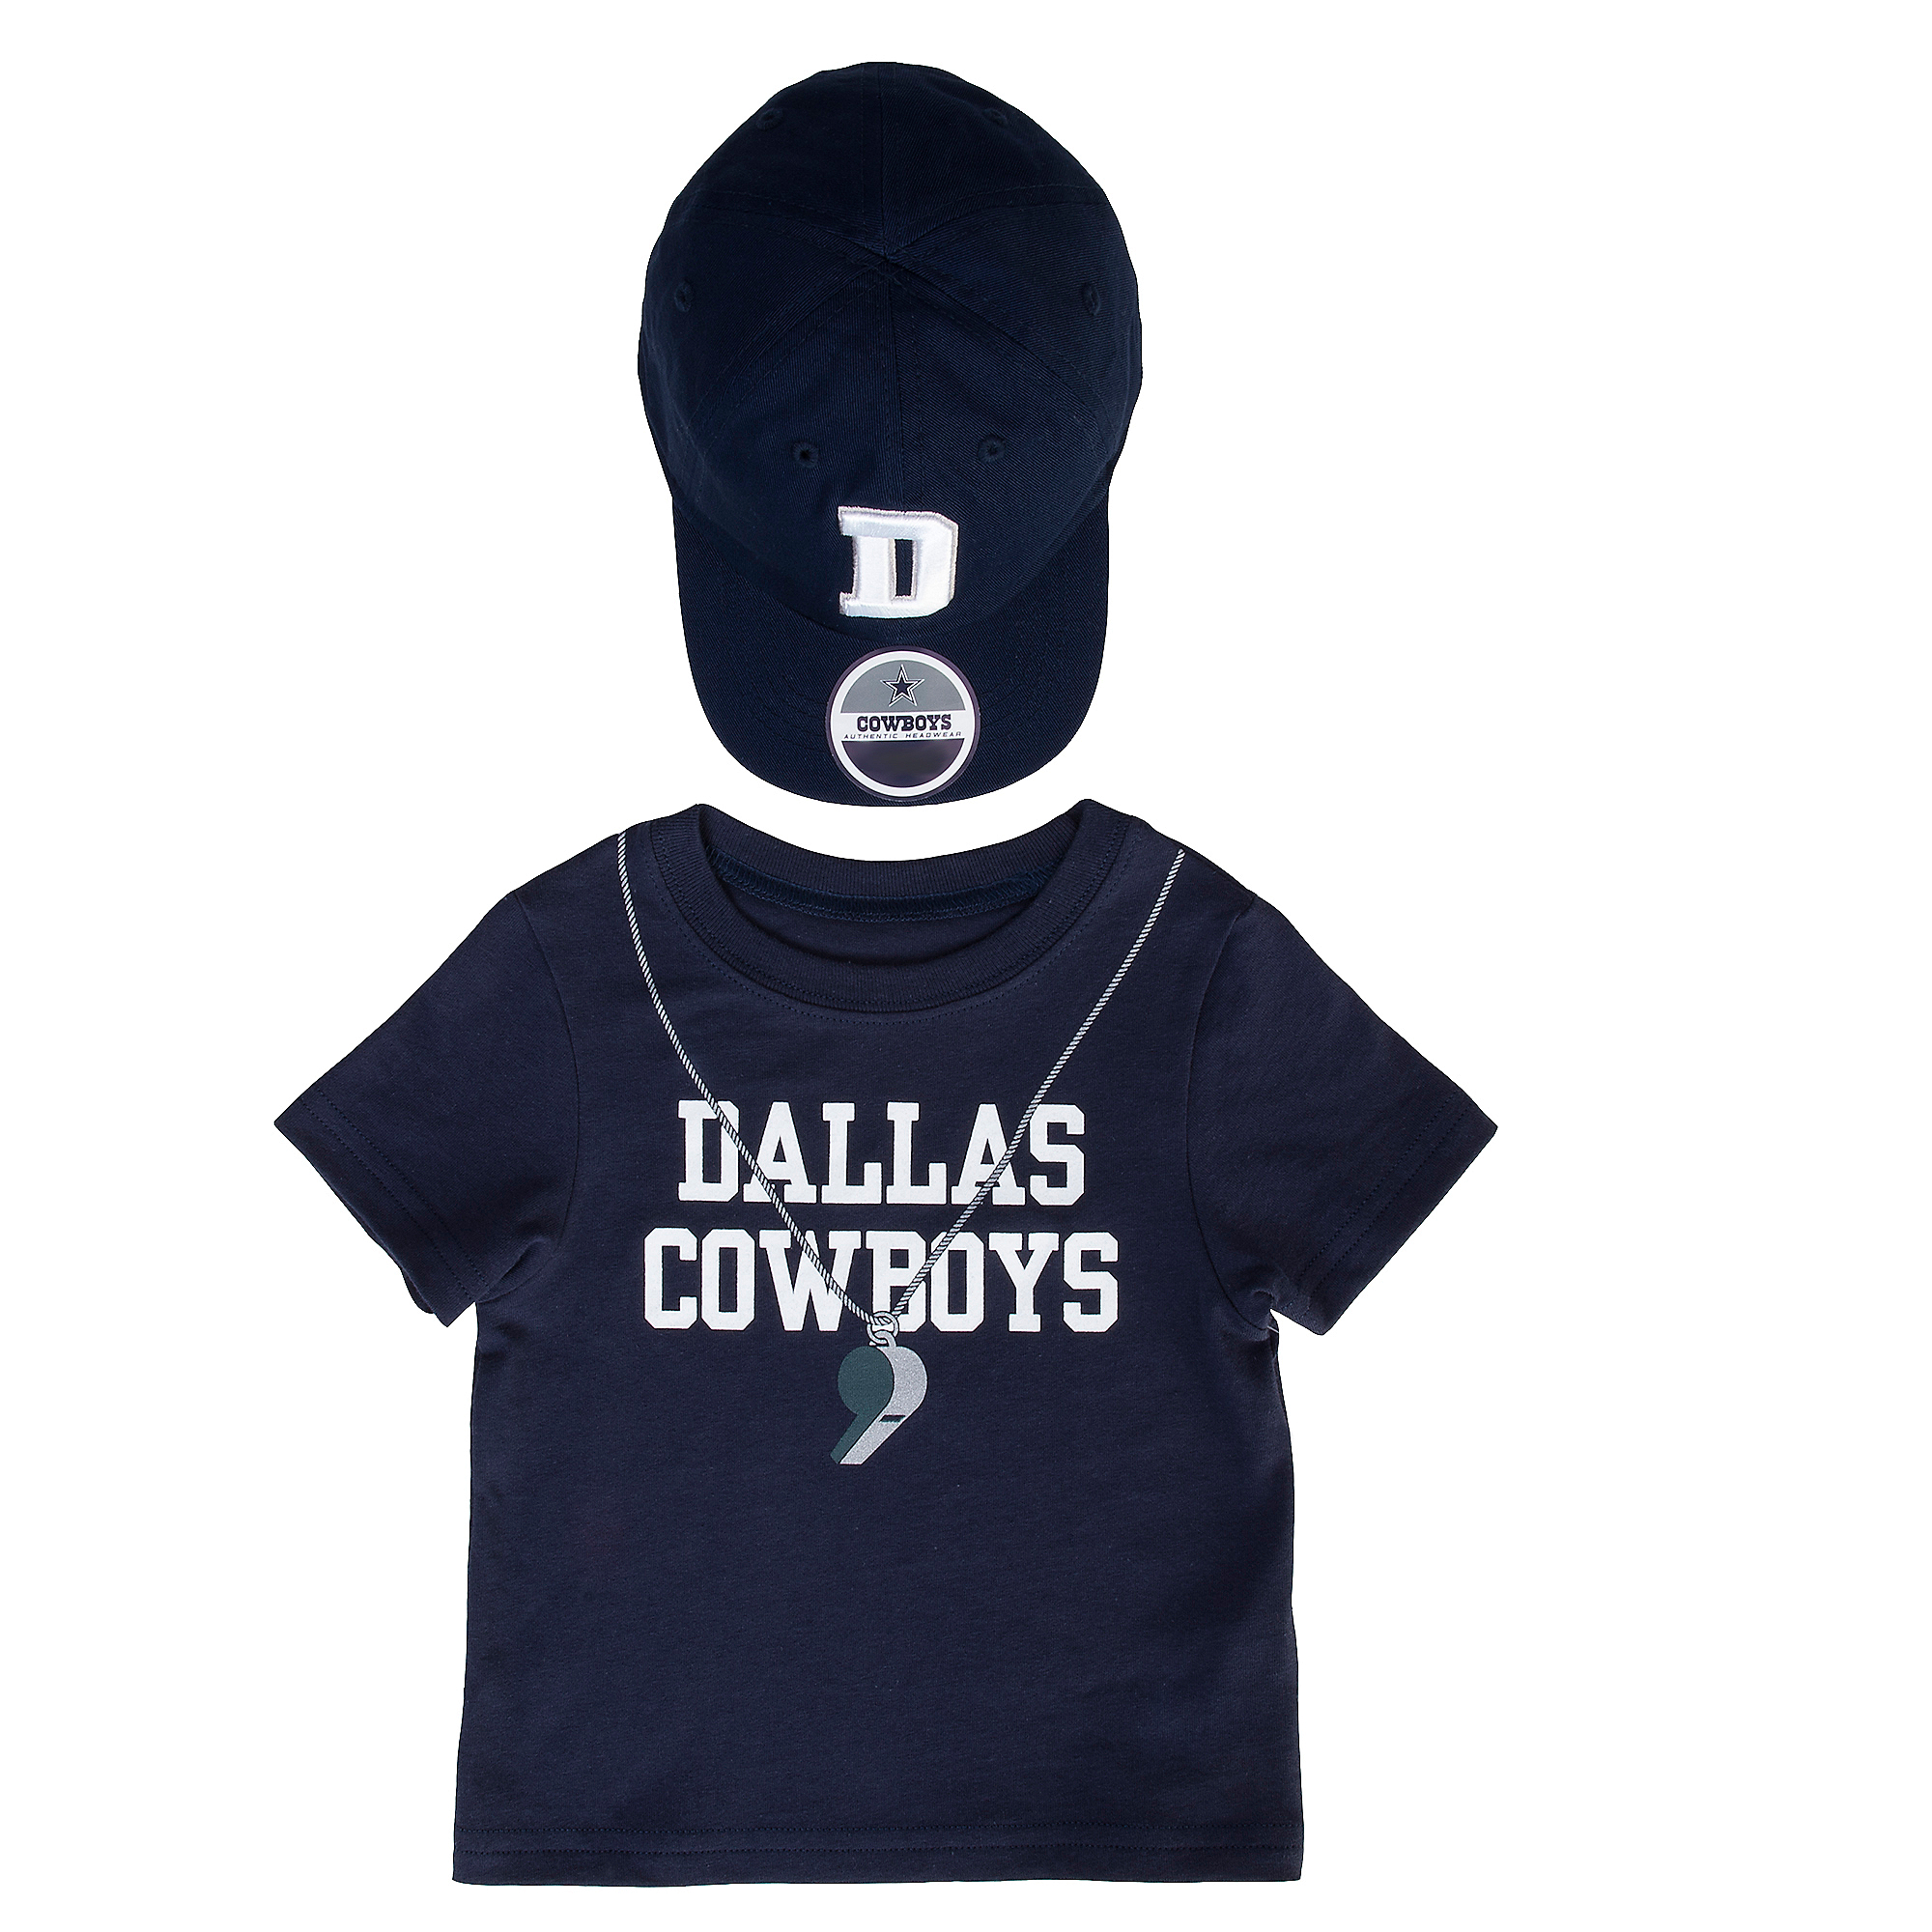 Dallas Cowboys Infant Lil' Coach Tee and Hat